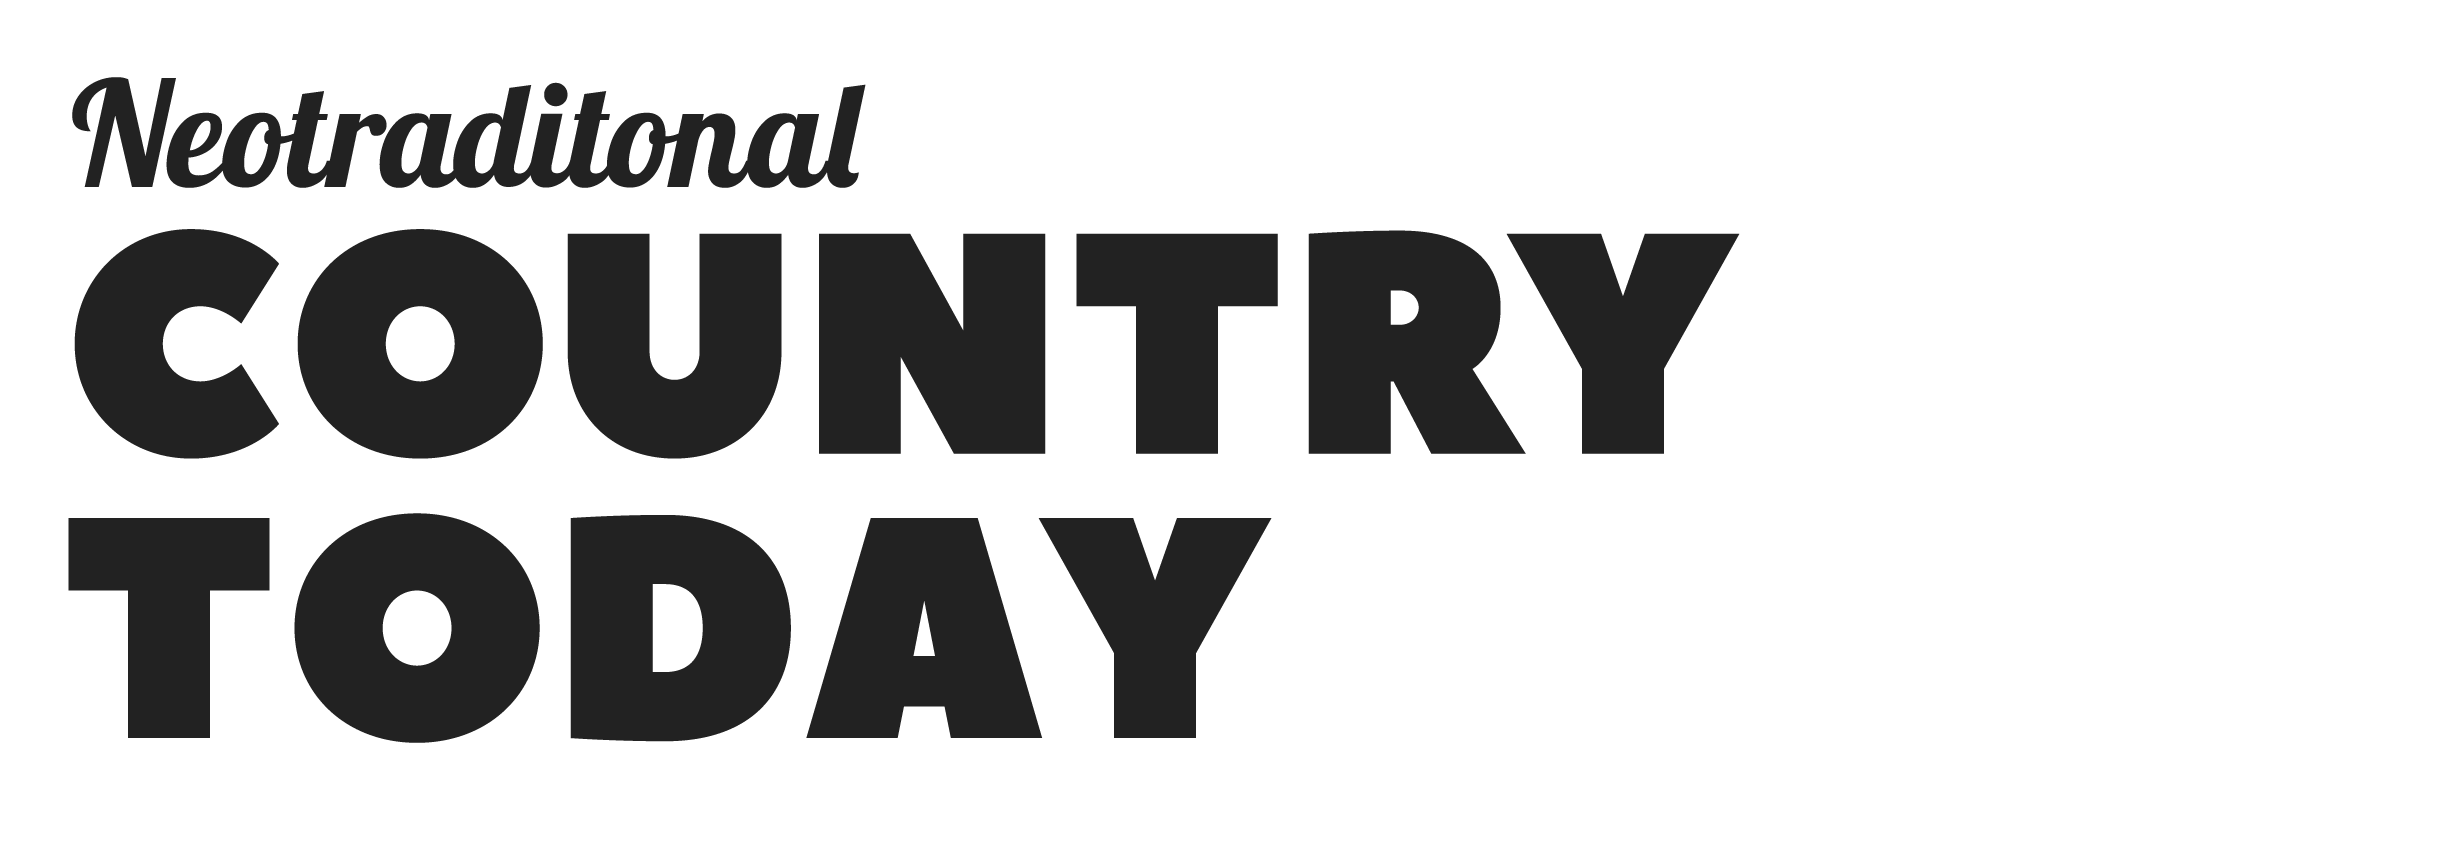 Neotraditional Country Today